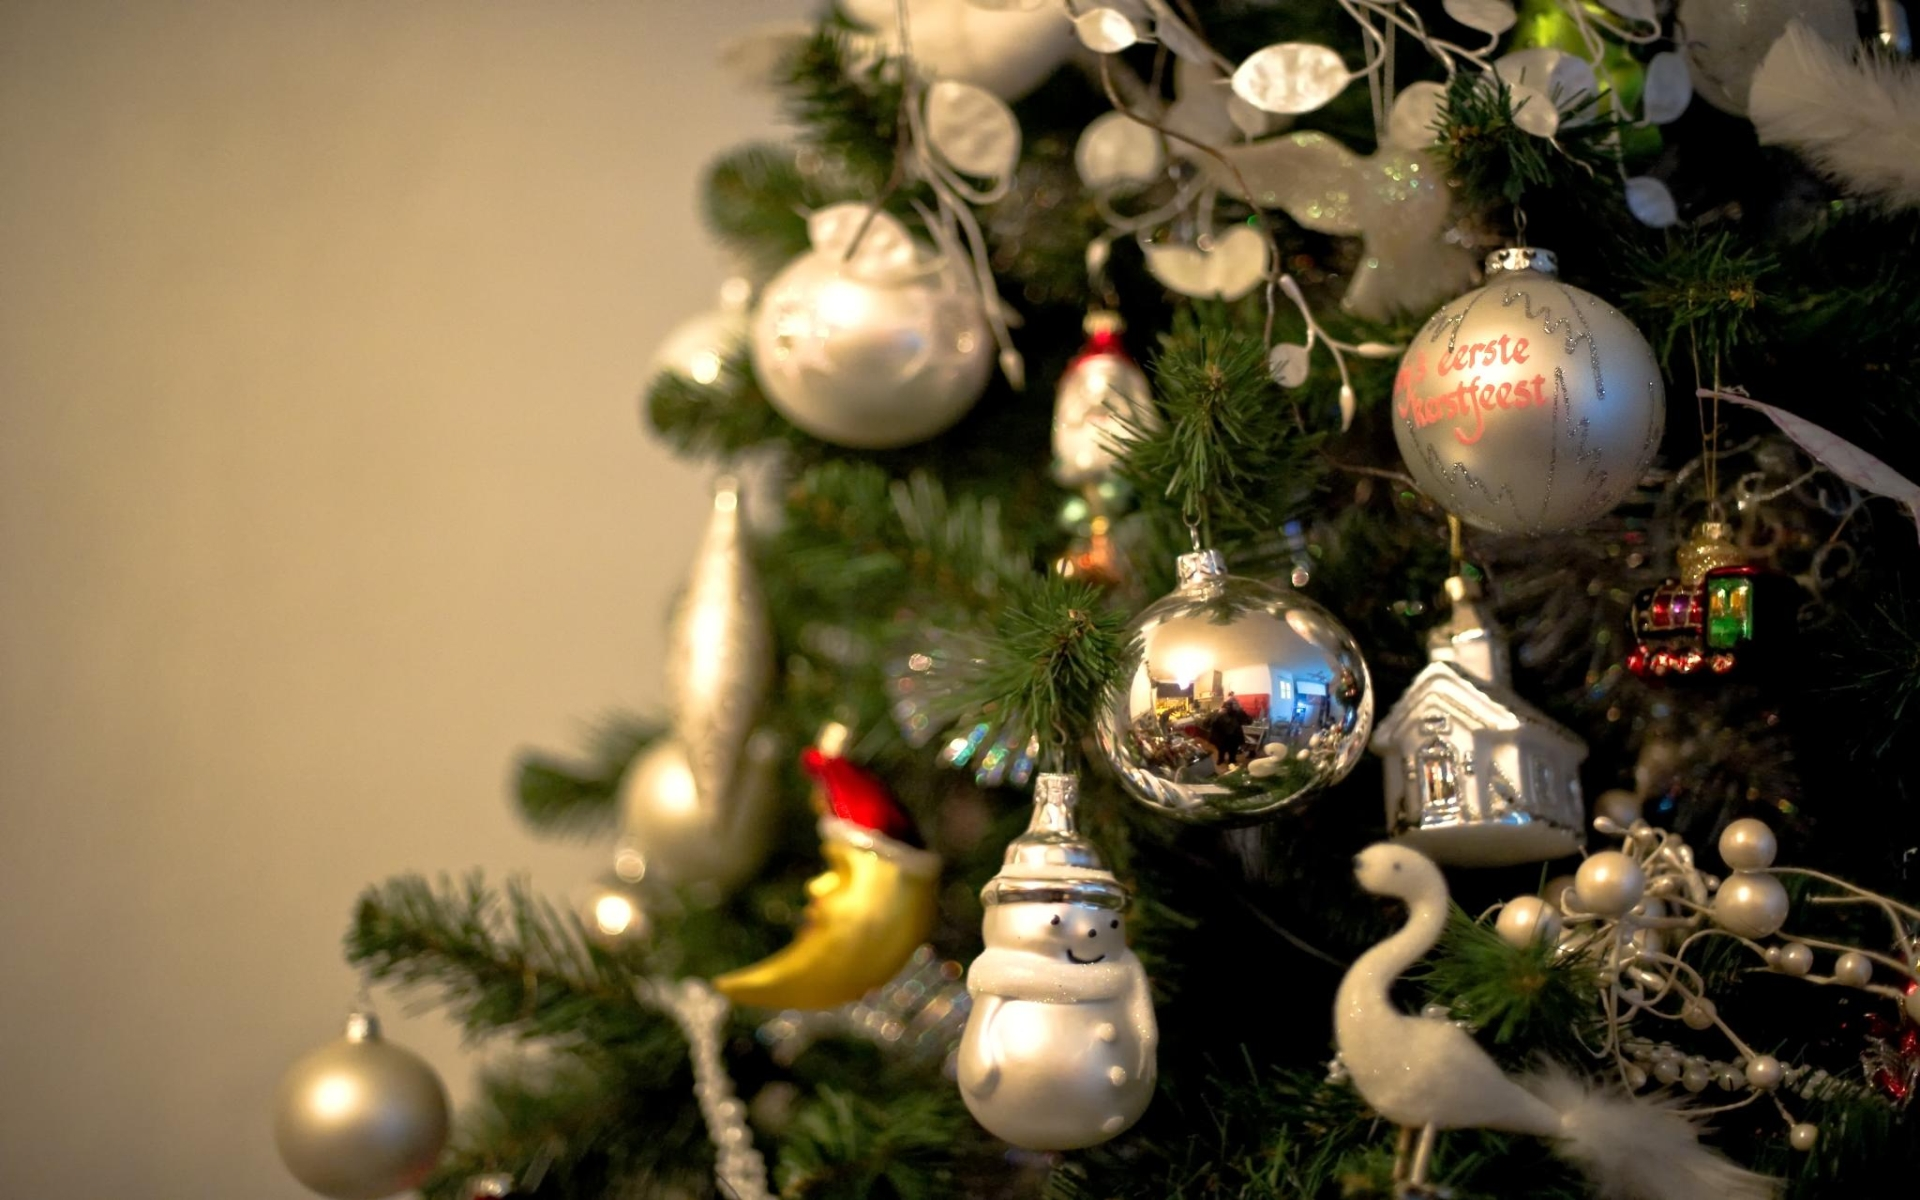 Christmas wallpapers pictures images - Christmas village wallpaper widescreen ...